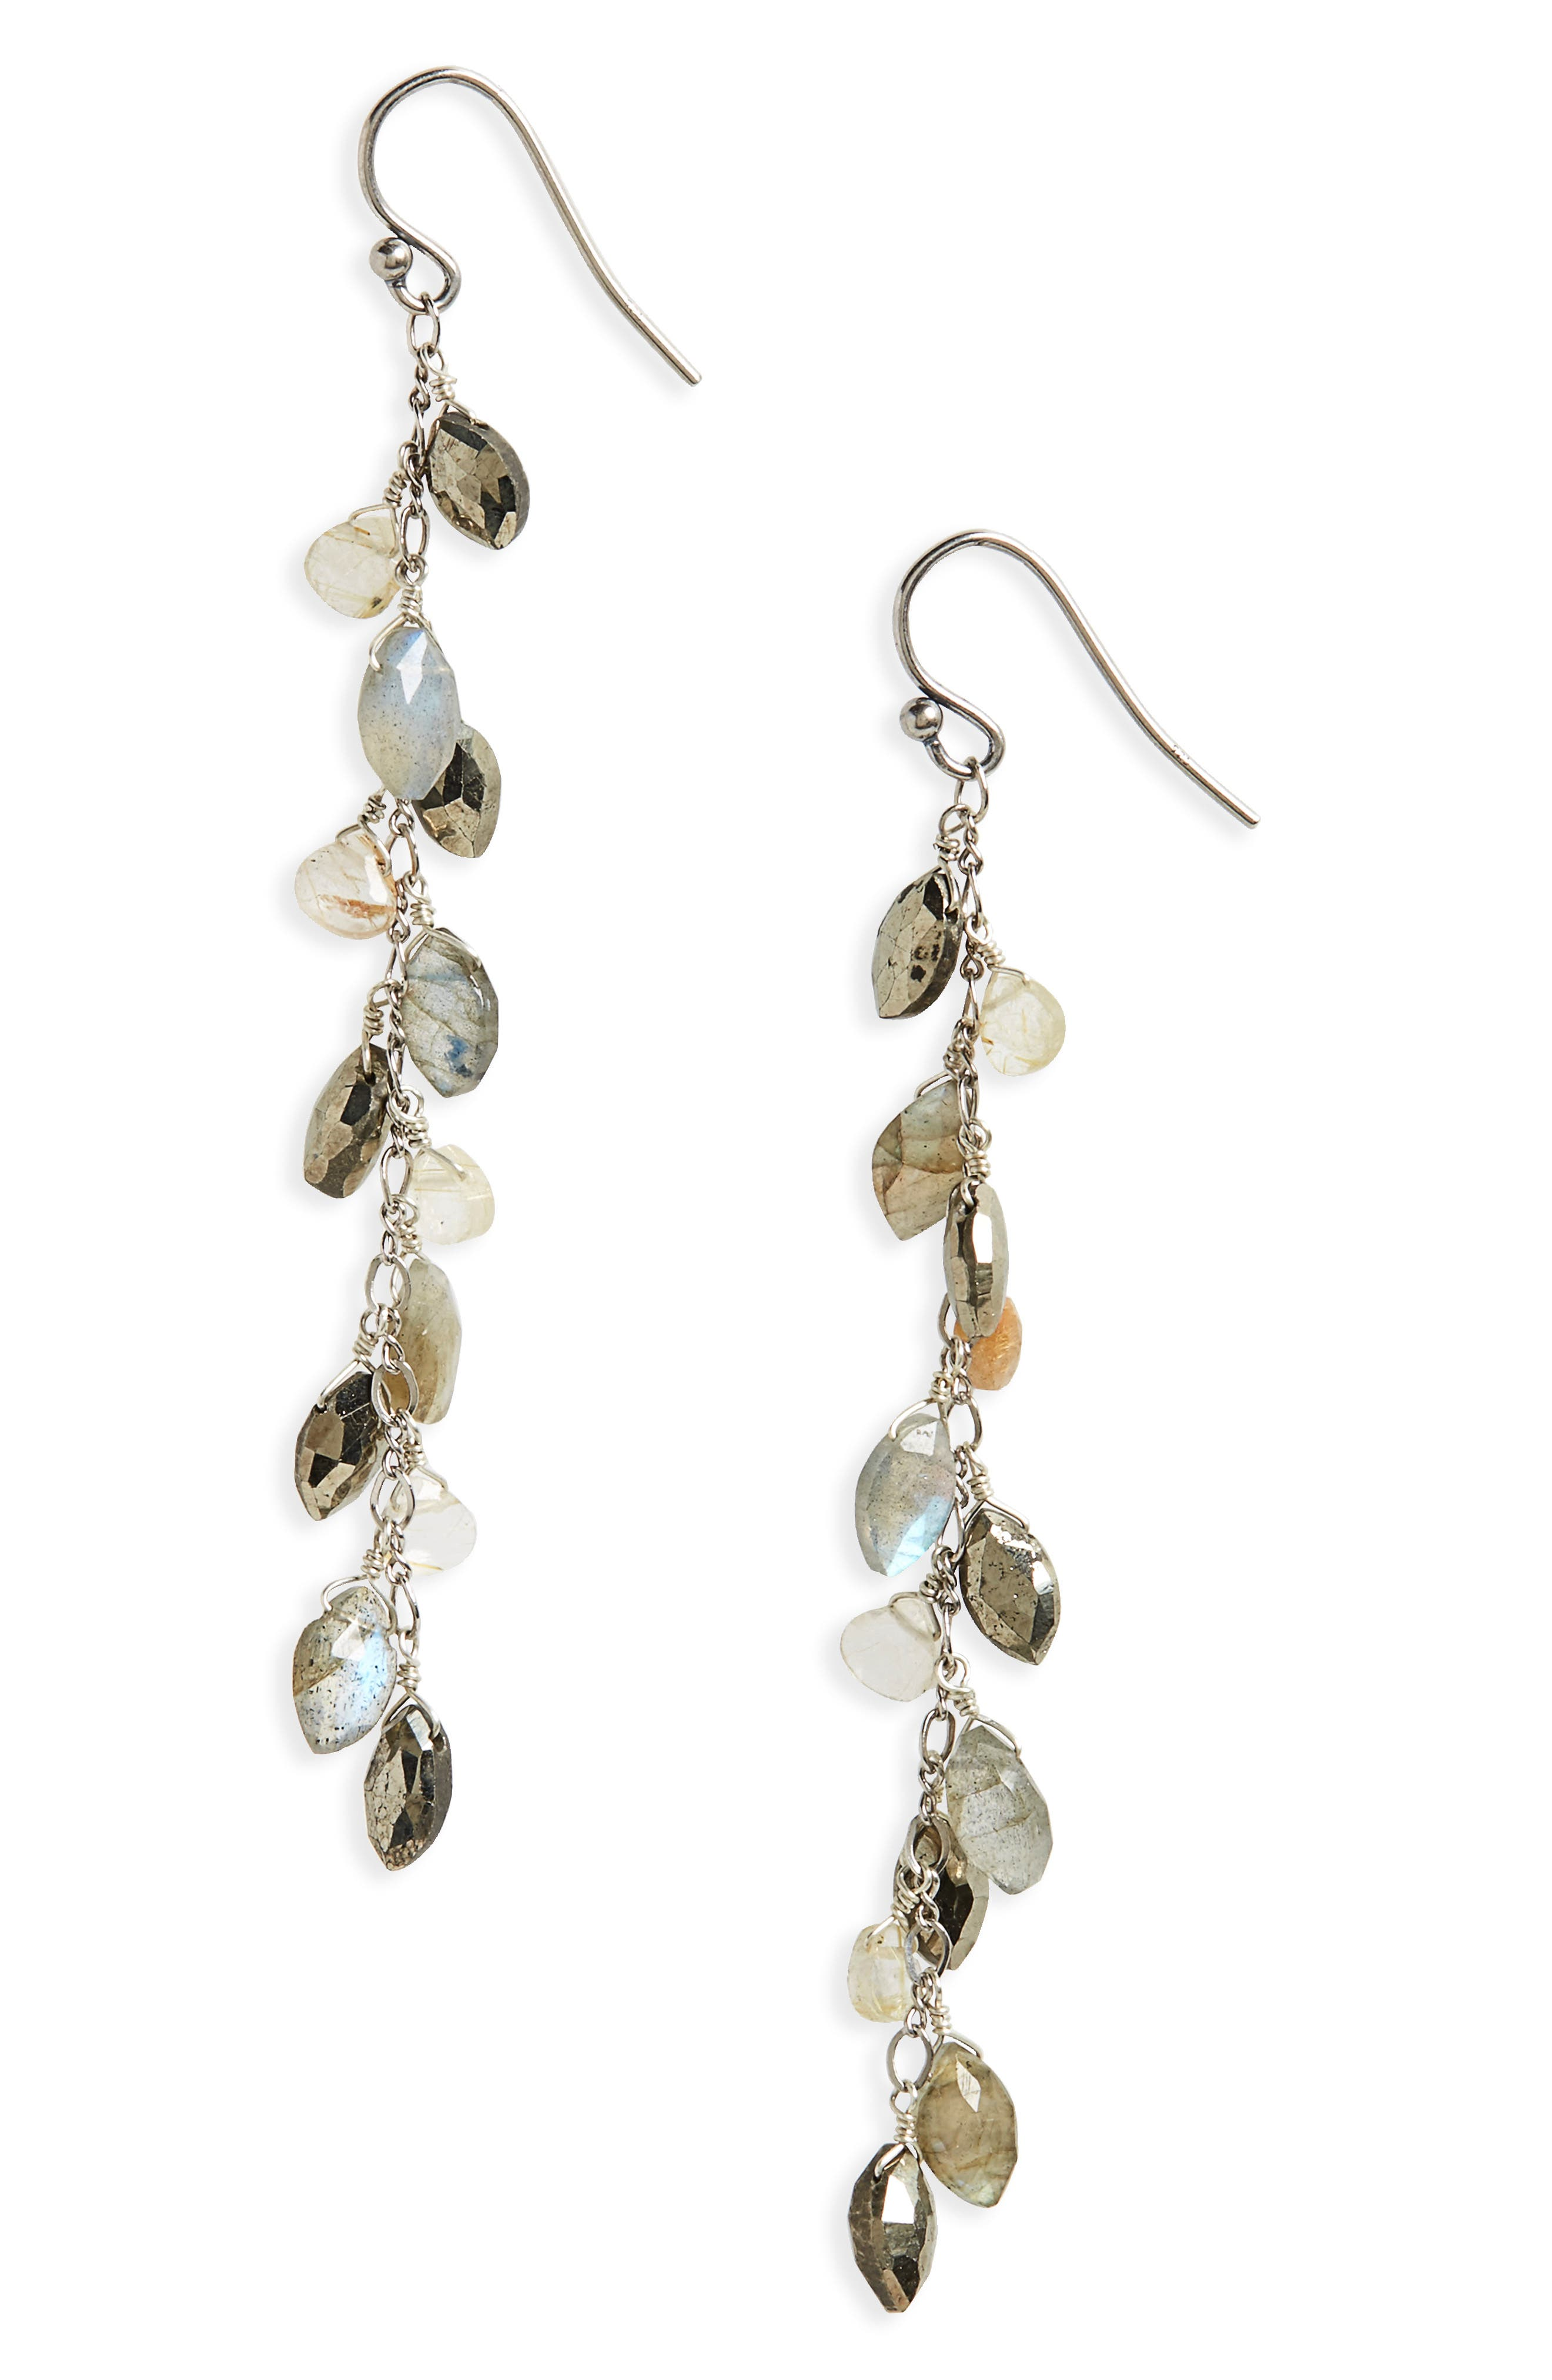 Semiprecious Stone Sterling Silver Drop Earrings,                             Main thumbnail 1, color,                             Pyrite/ Silver